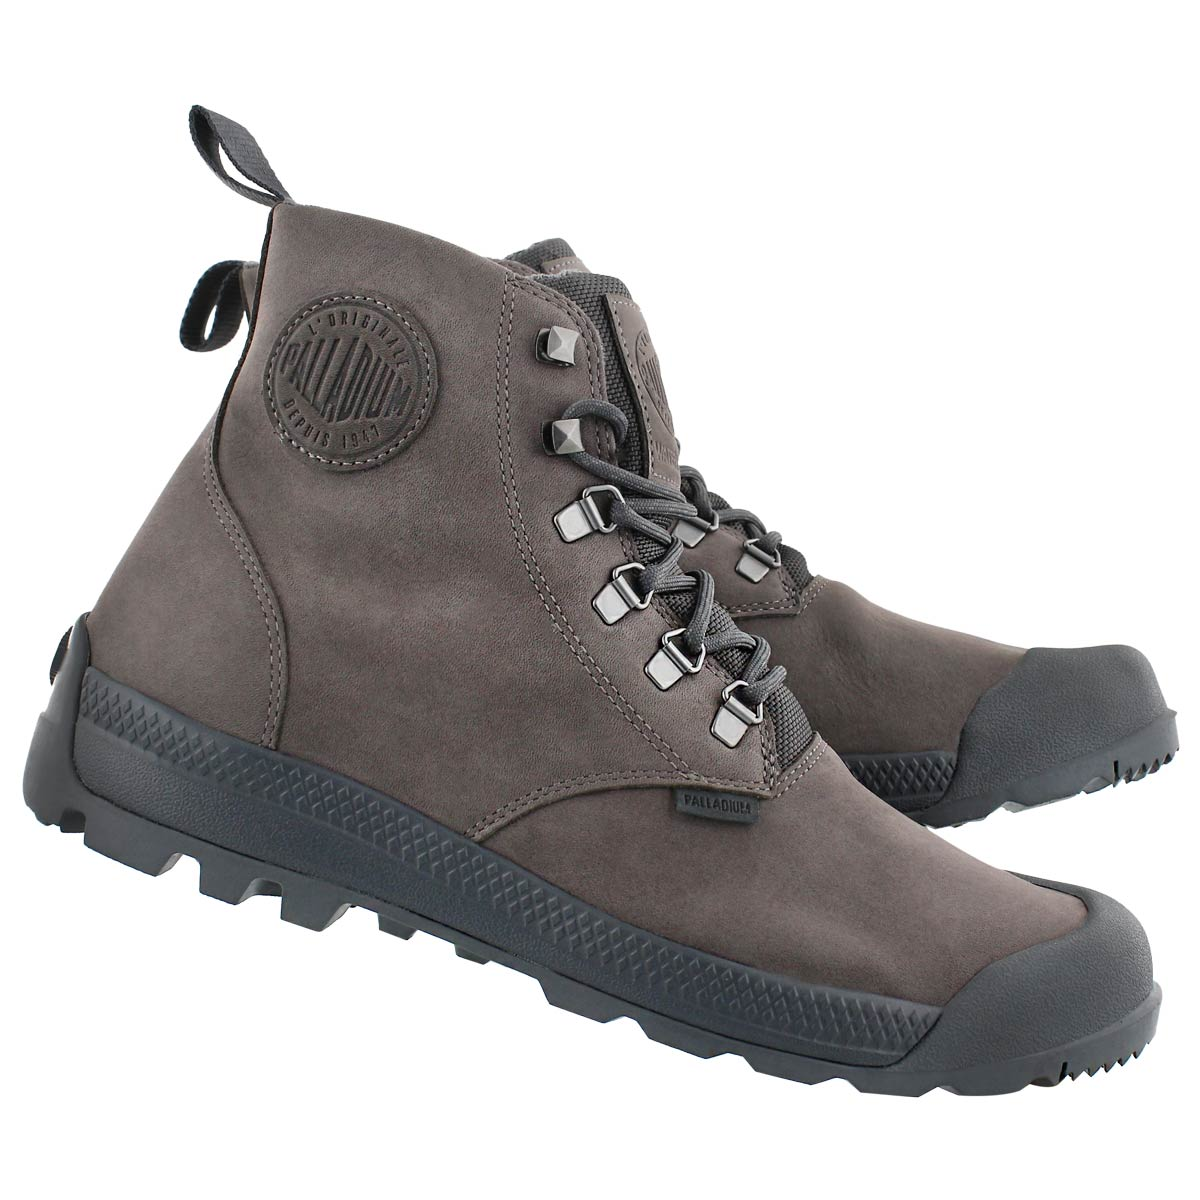 Mns Pampatech Hi grey wtpf ankle boot